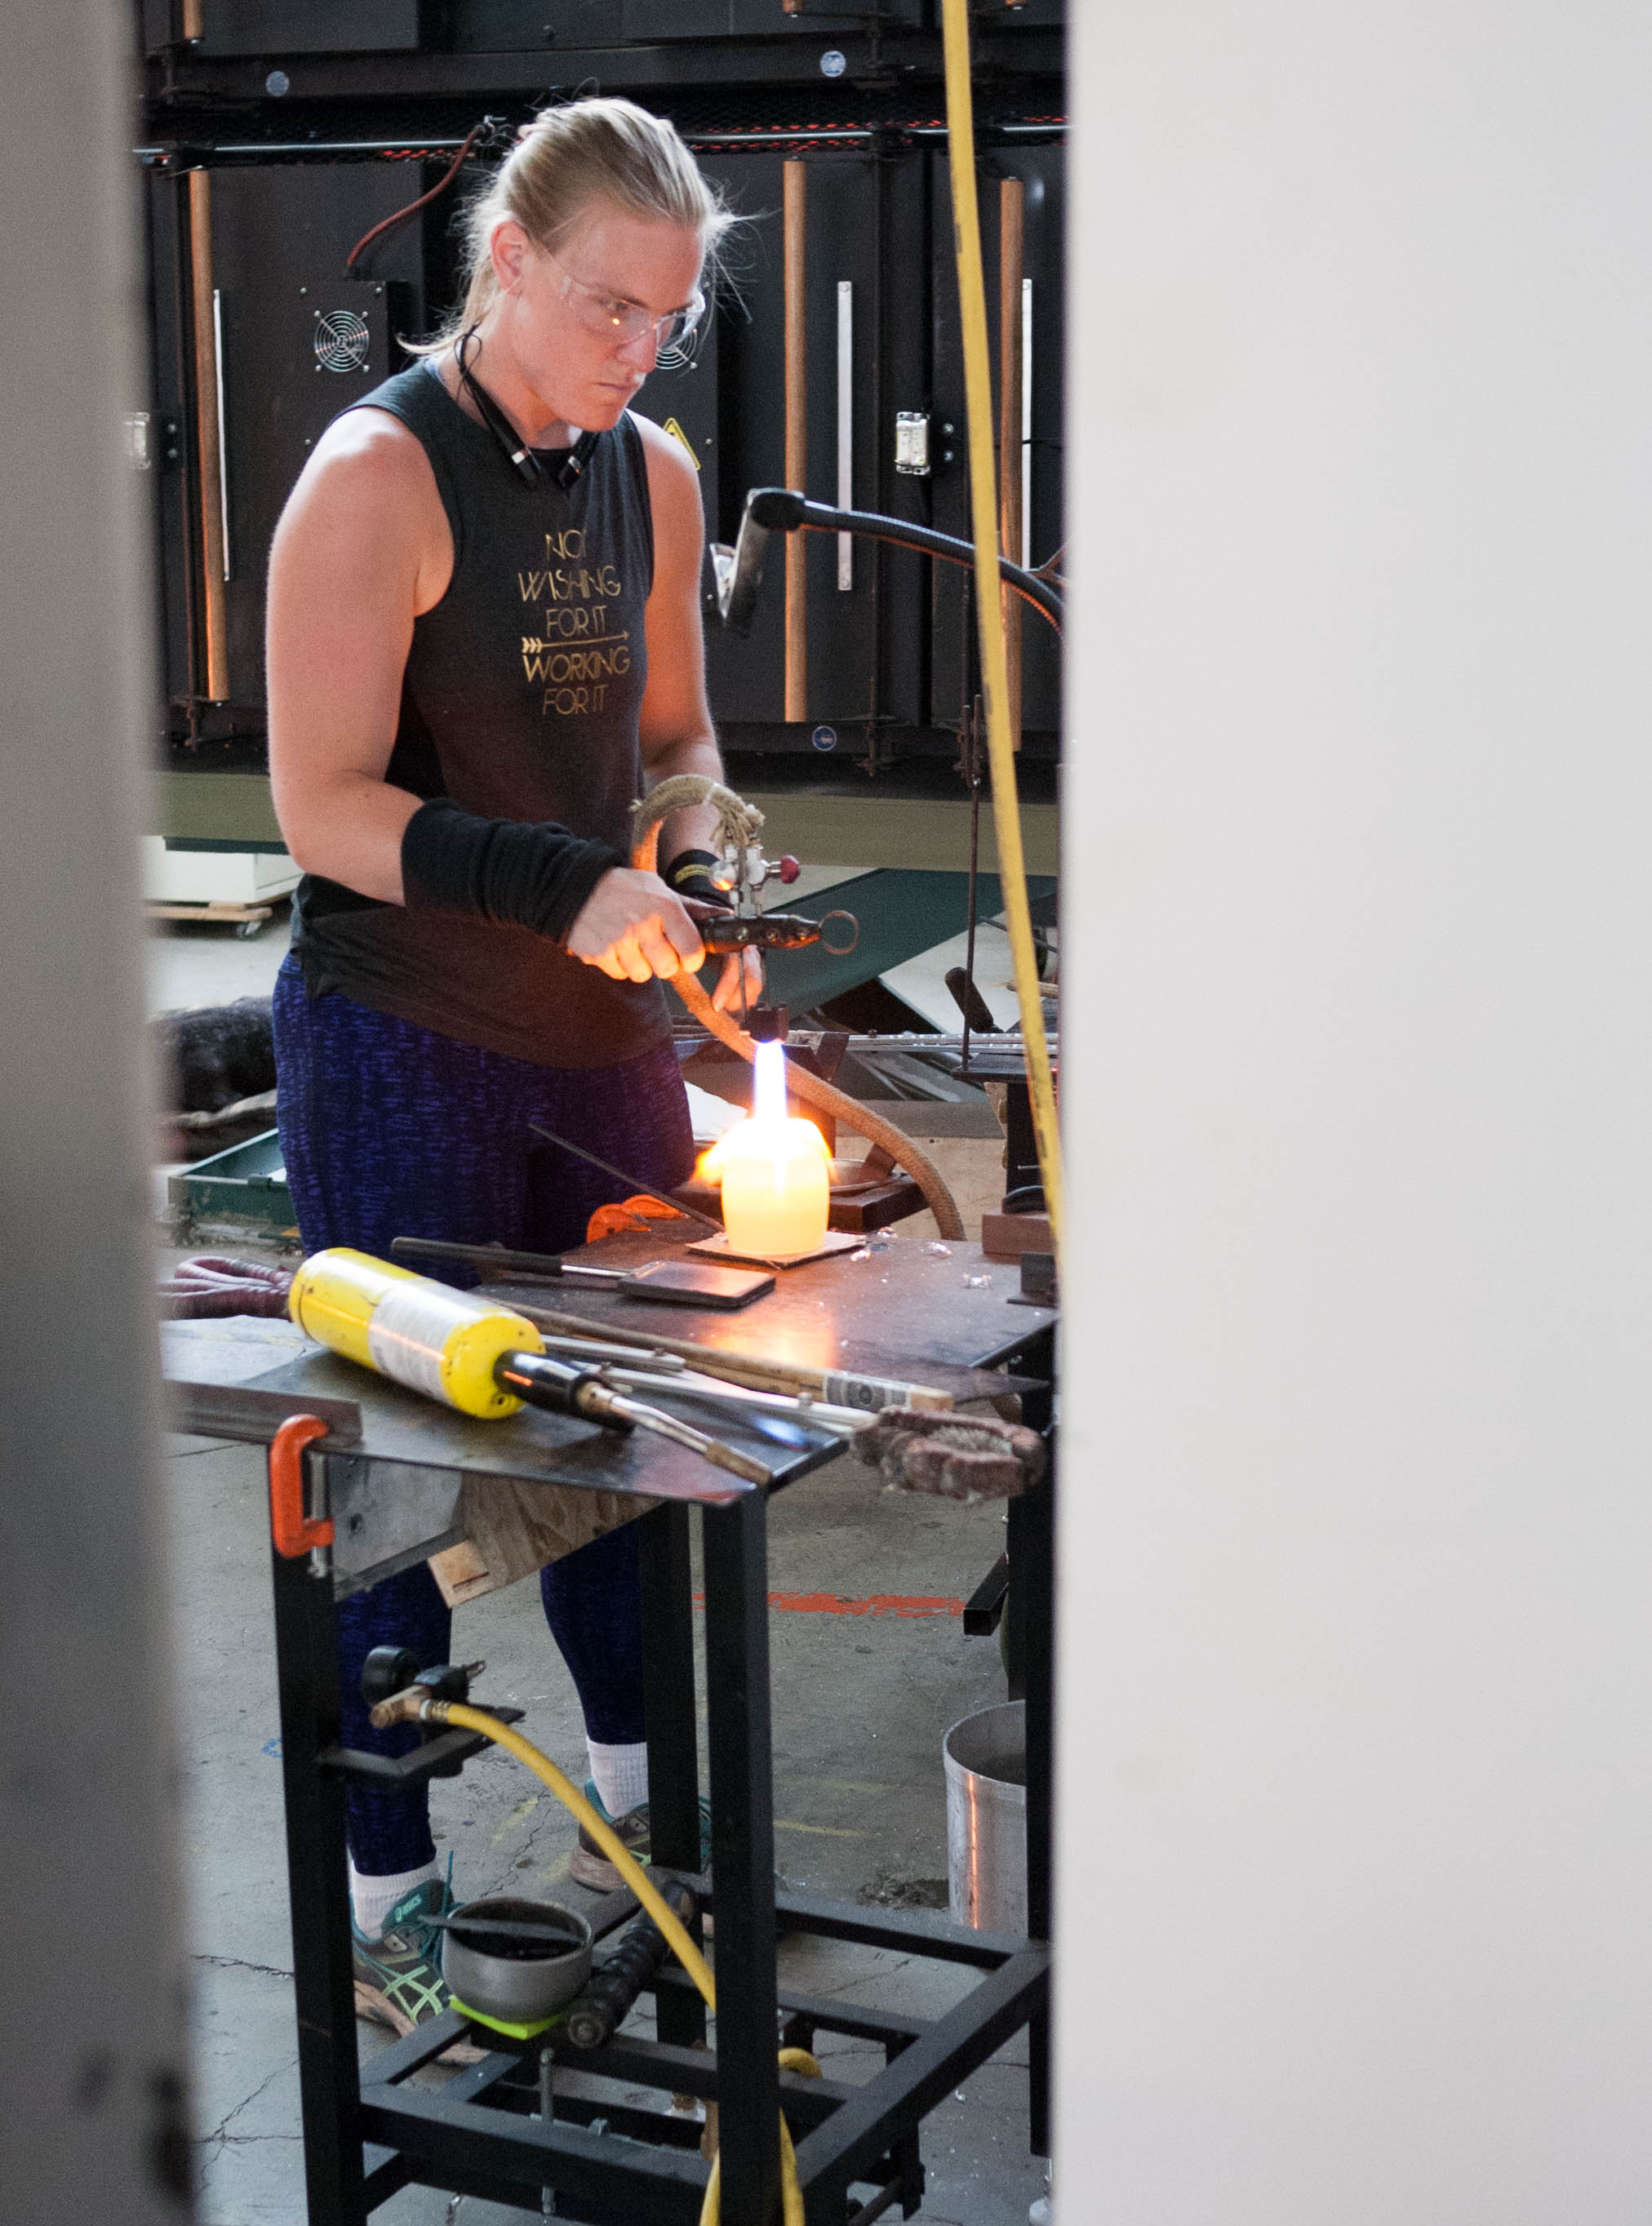 This badass glassblower is putting the finishing touches on a glassbaby votive. Apparently the final step of this glasswork is the most difficult, so only experienced and highly trained glassblowers can do it.